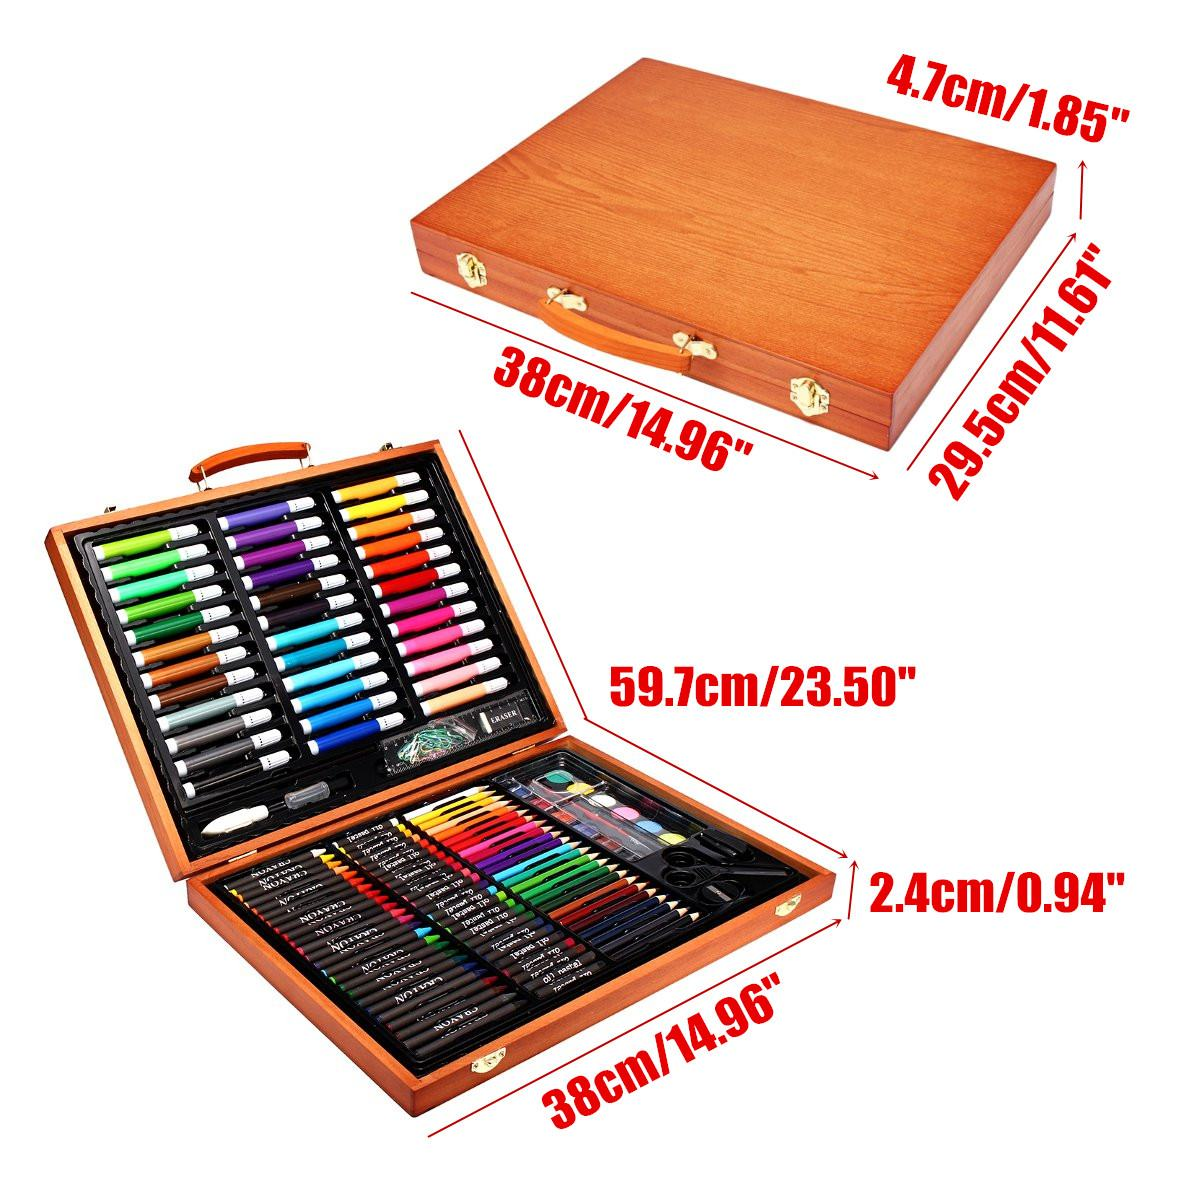 US $46.02 41% OFF|Coloured Pencils Sets Color Art Professional Sketch  Drawing Set Coloring Paint Pen Brush Artist Kit with Wooden Box Gift  148Pcs-in ...